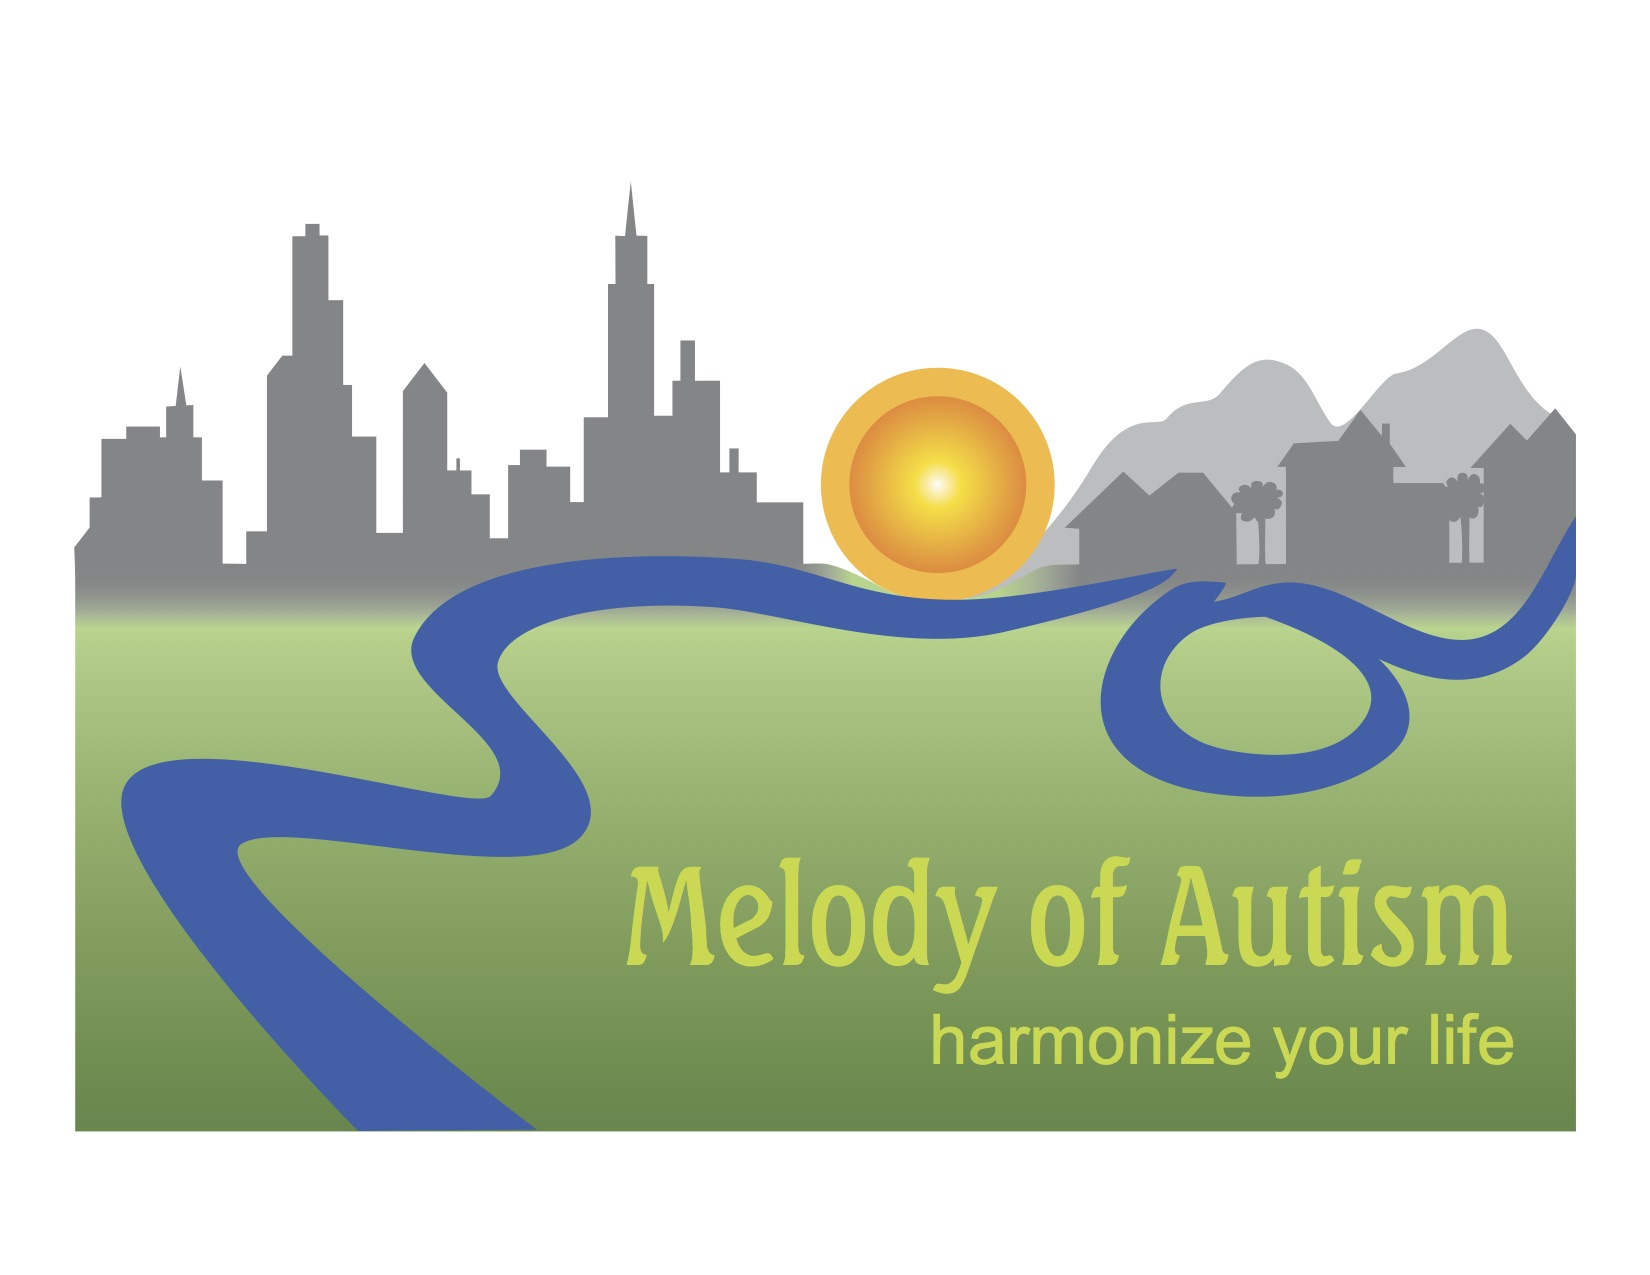 Melody of Autism logo